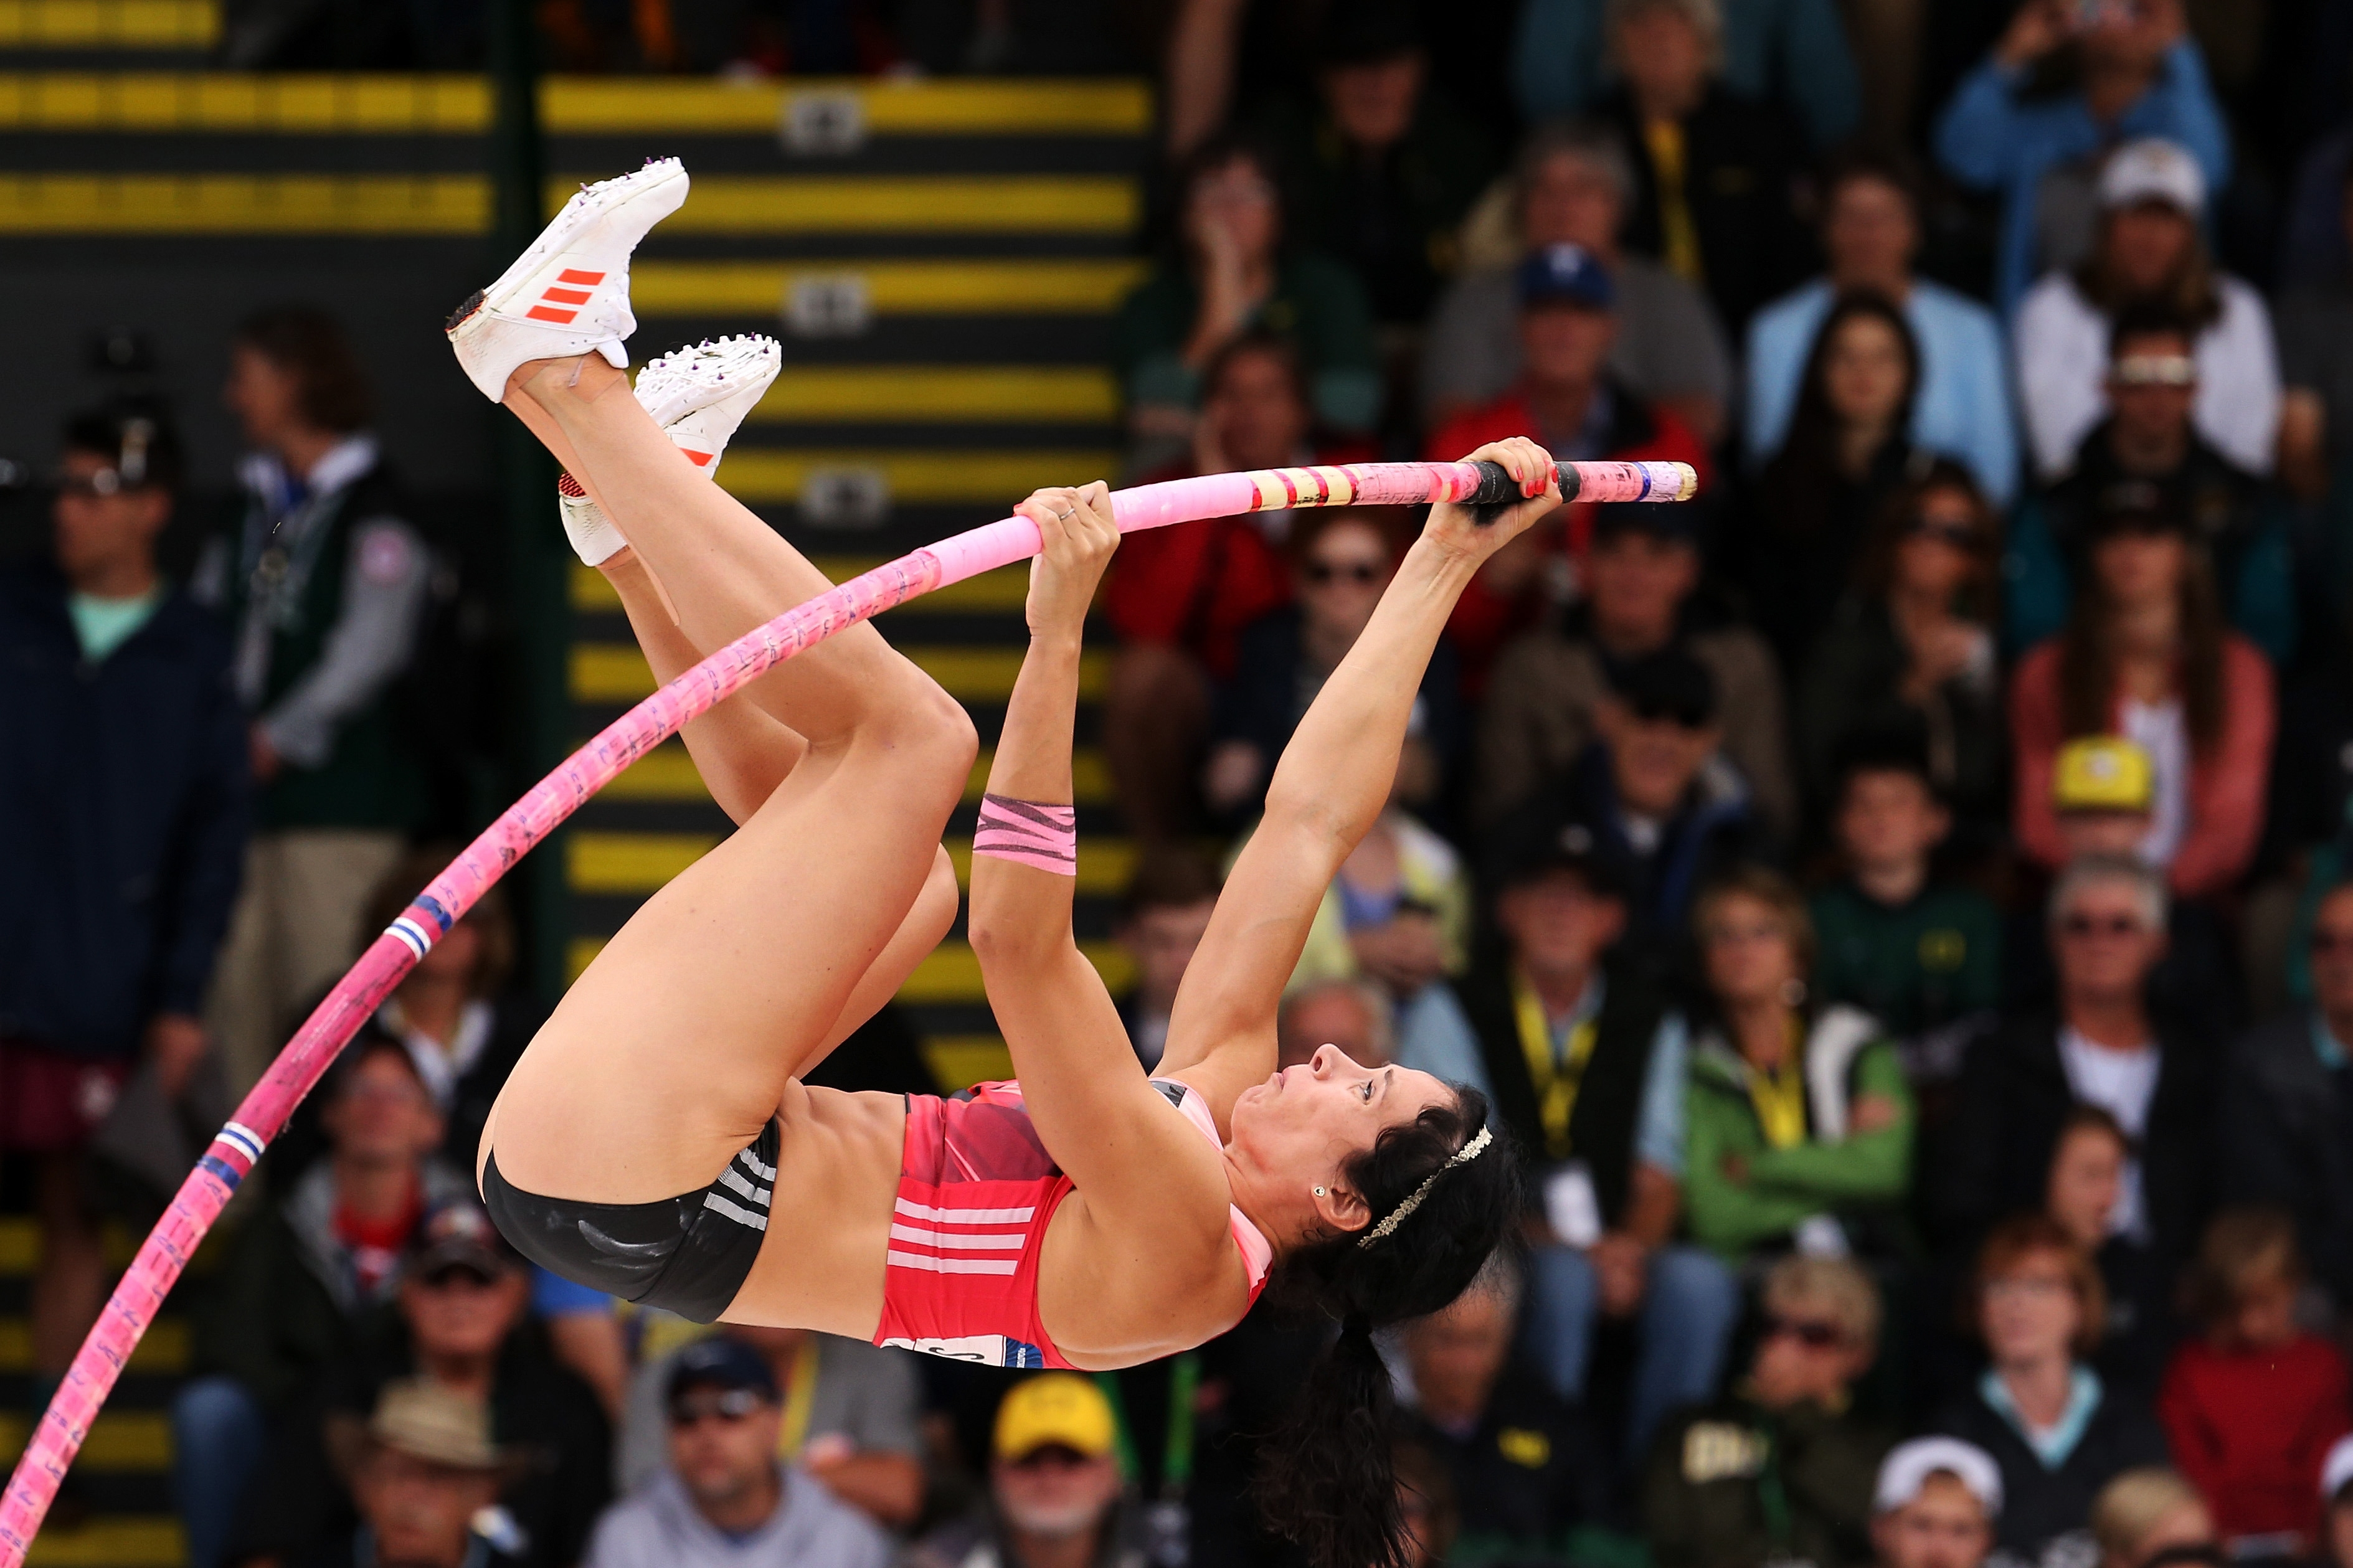 Jenn Suhr, the best female pole vaulter in U.S. history, is suffering from an undetermined illness that has made it hard for her to breathe or speak and will compromise her ability to vault Tuesday. (Getty Images)